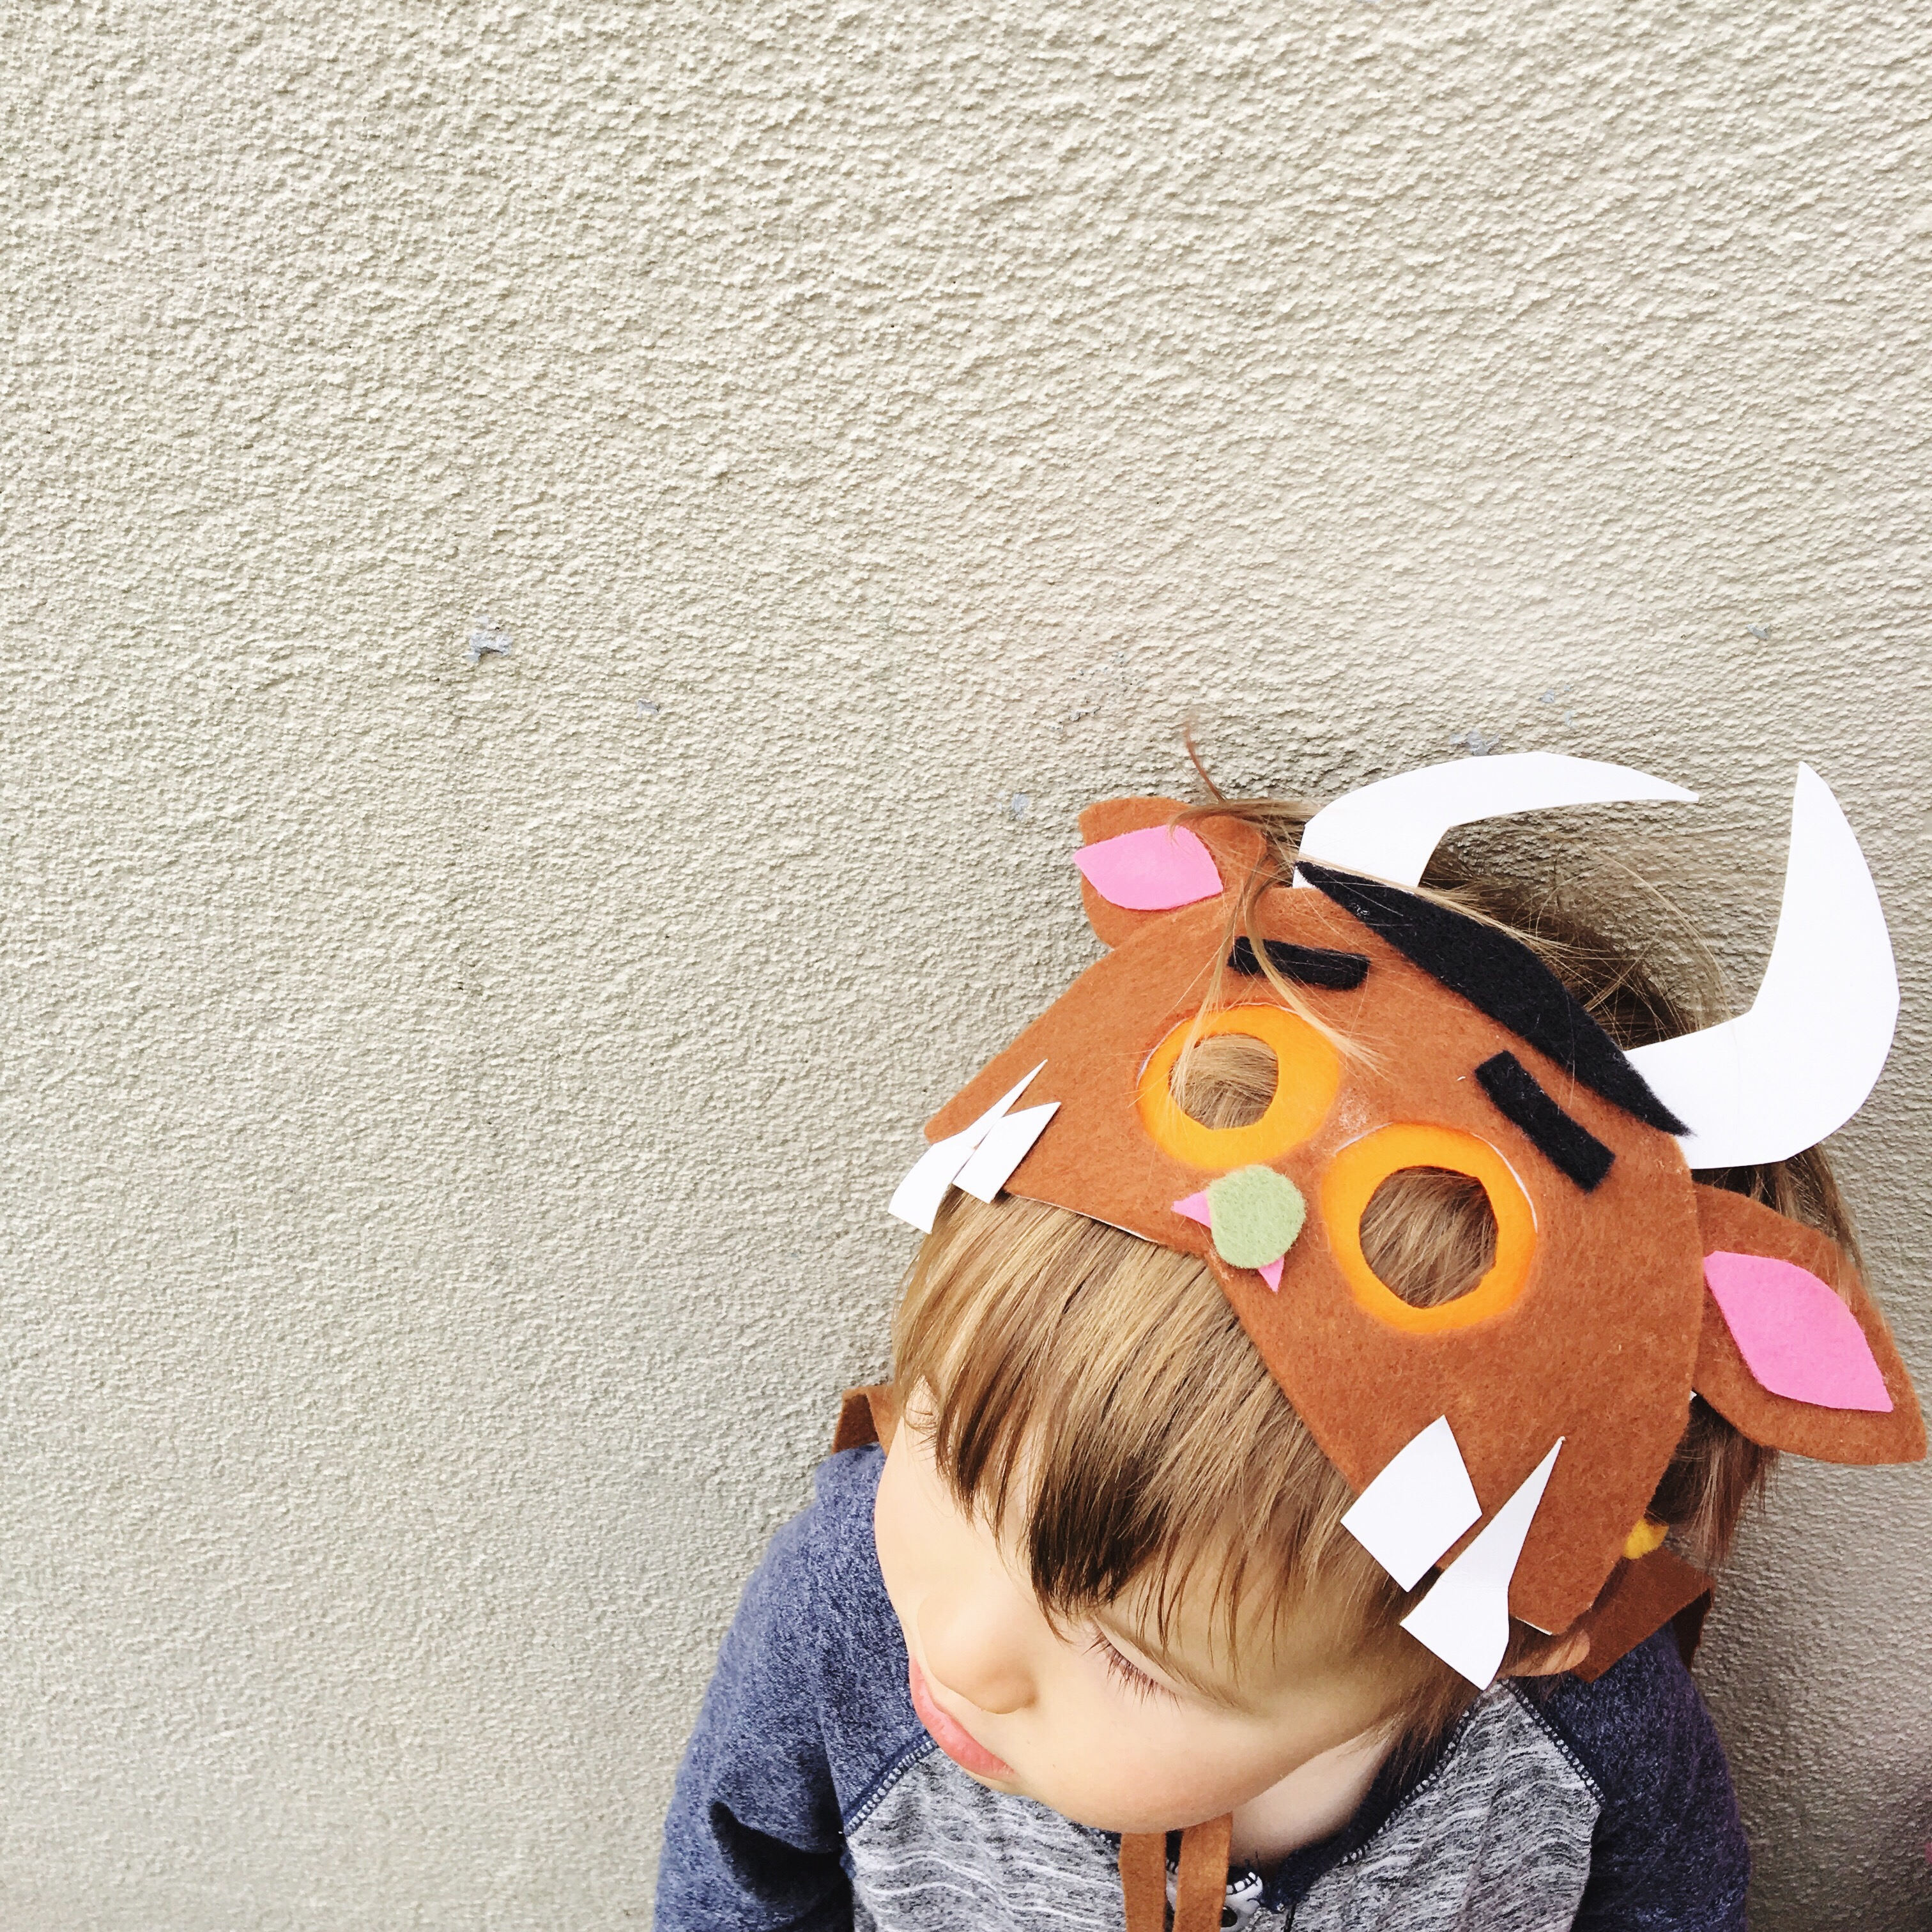 Perfect for a fancy dress party or Book Week parade. How to make your own simple Gruffalo costume using felt, paper plates and glue.